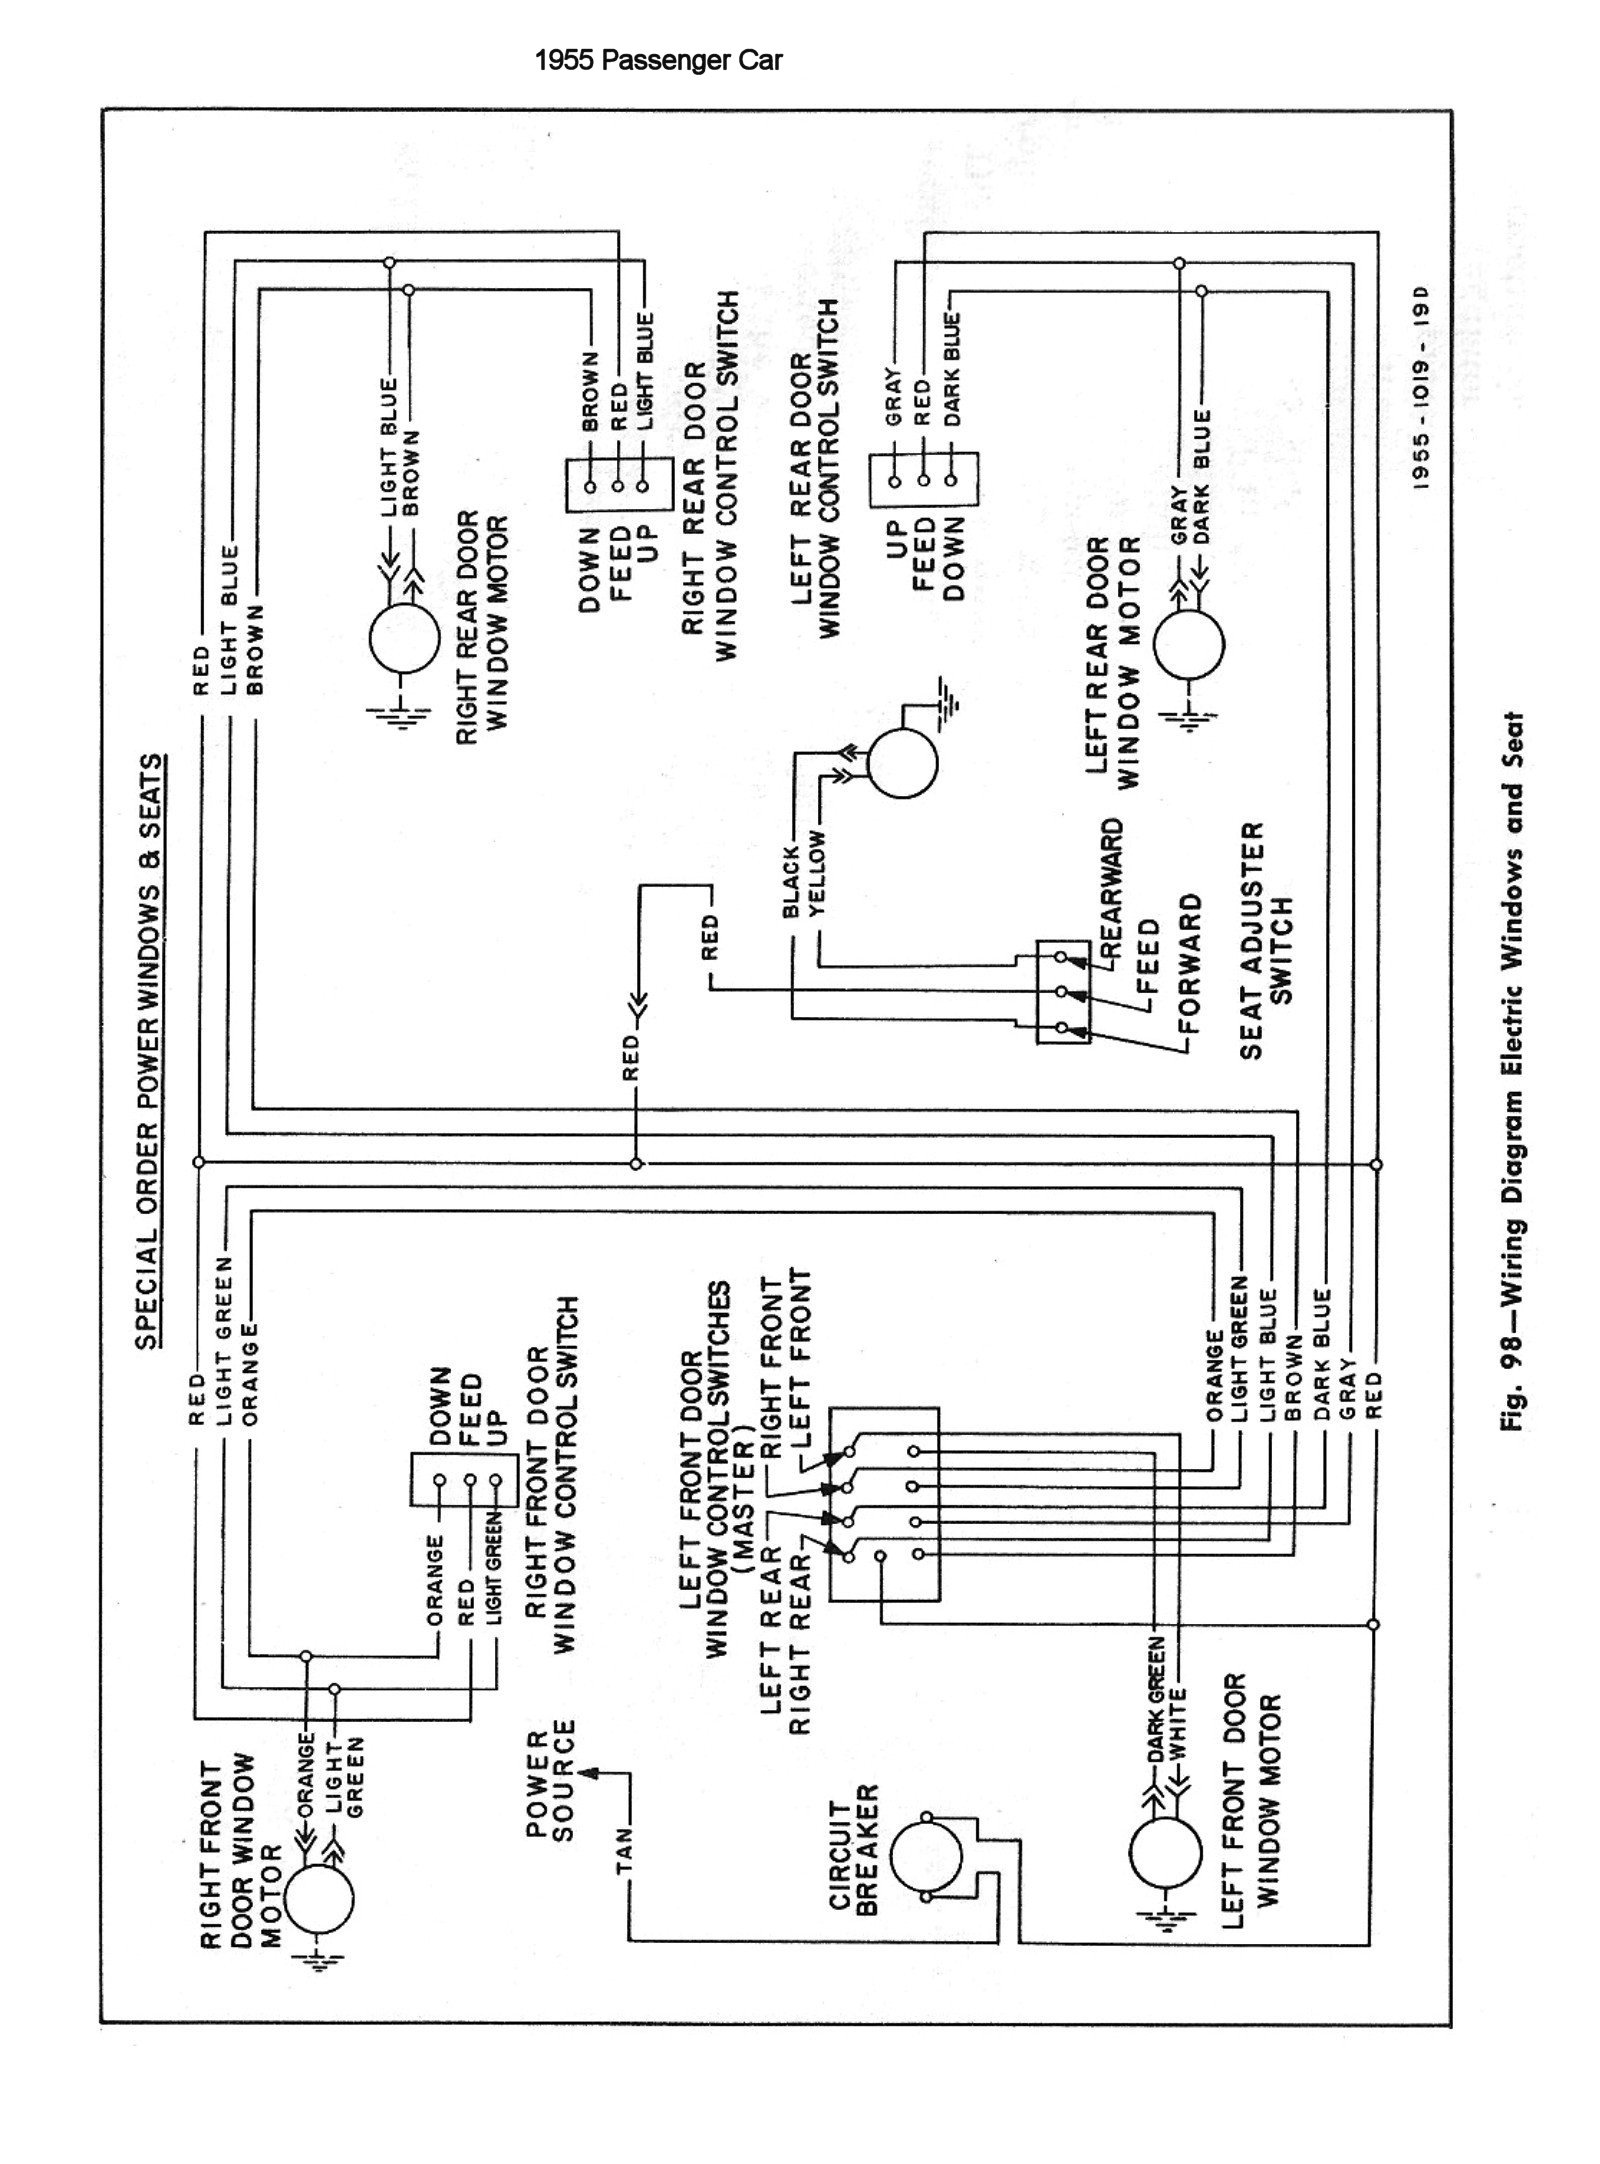 55csm0146 chevy wiring diagrams Light Switch Wiring Diagram at suagrazia.org